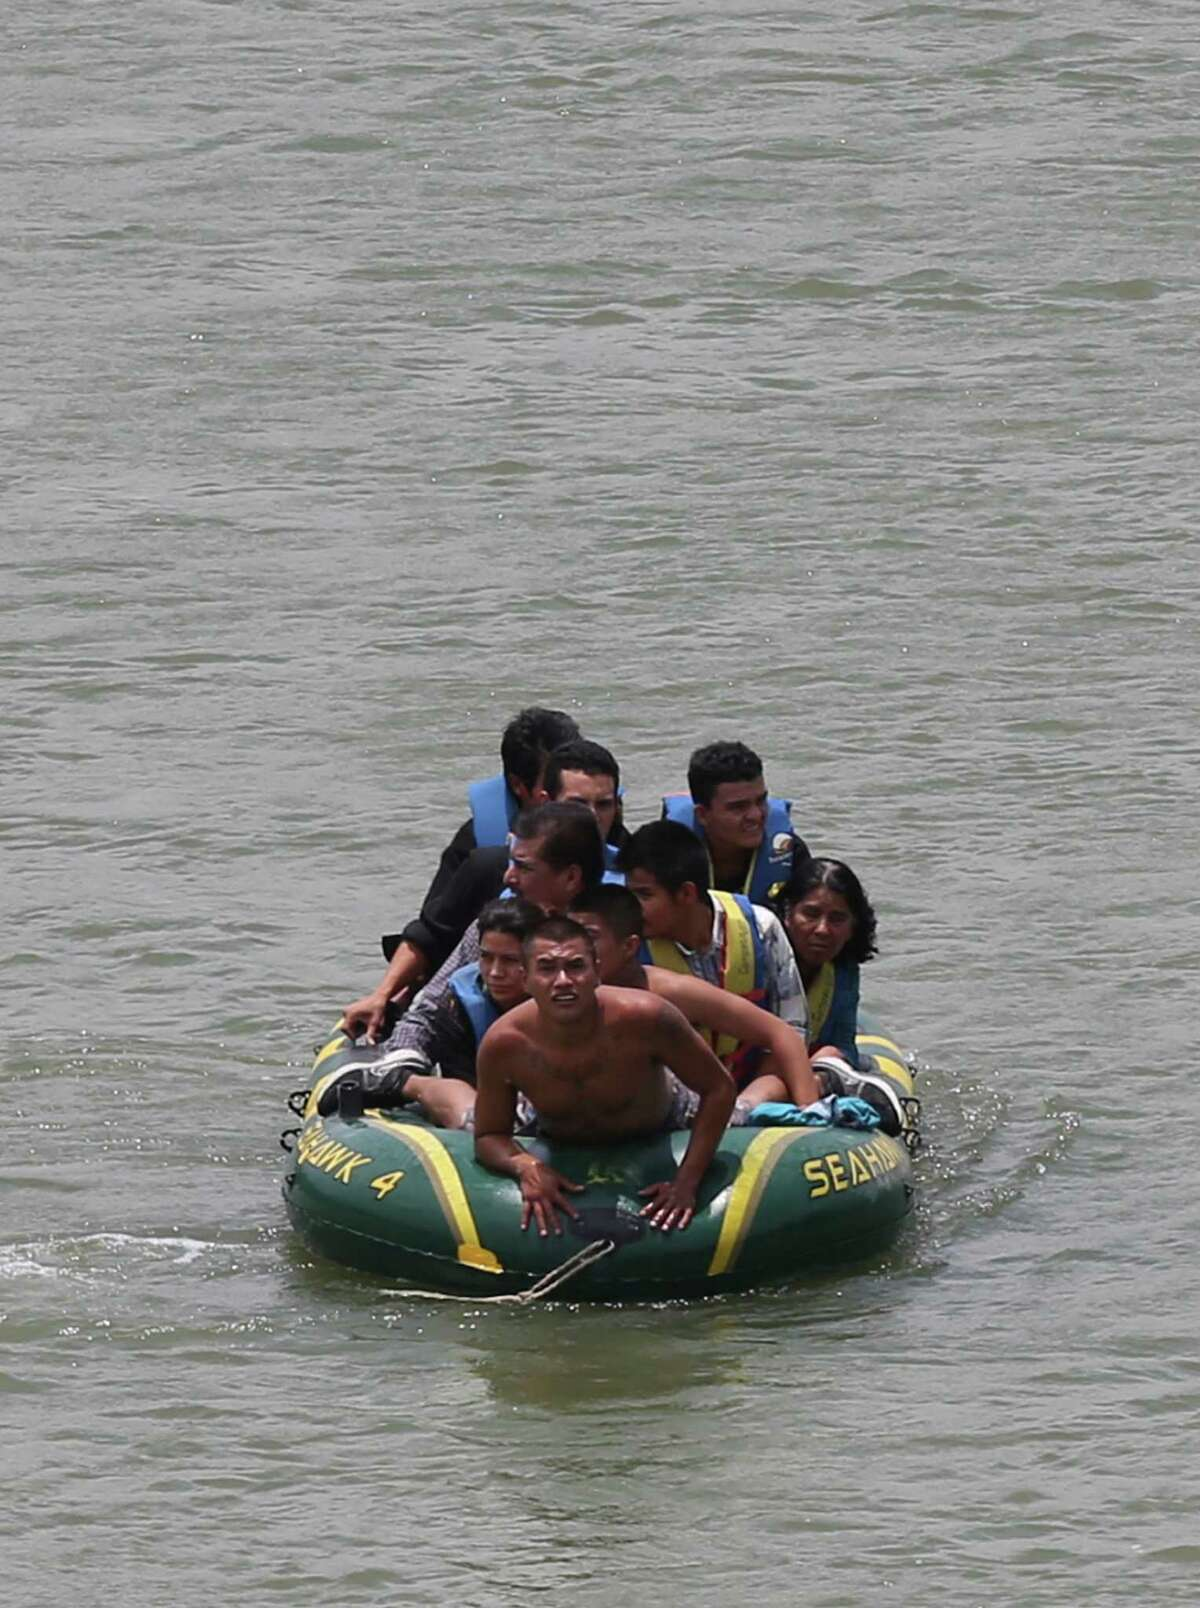 Using an inflatable raft, coyotes, or smugglers, move immigrants across the Rio Grande near the international bridge in Roma, Texas. A wave of Central American immigrant families and unaccompanied minors are entering the U.S. through the Rio Grande Valley south of Roma. This has caused law enforcement agencies to concentrate agents in the in that area. Higher risk smuggling operations have moved into Starr County in order to avoid the saturated border in Hidalgo, County.